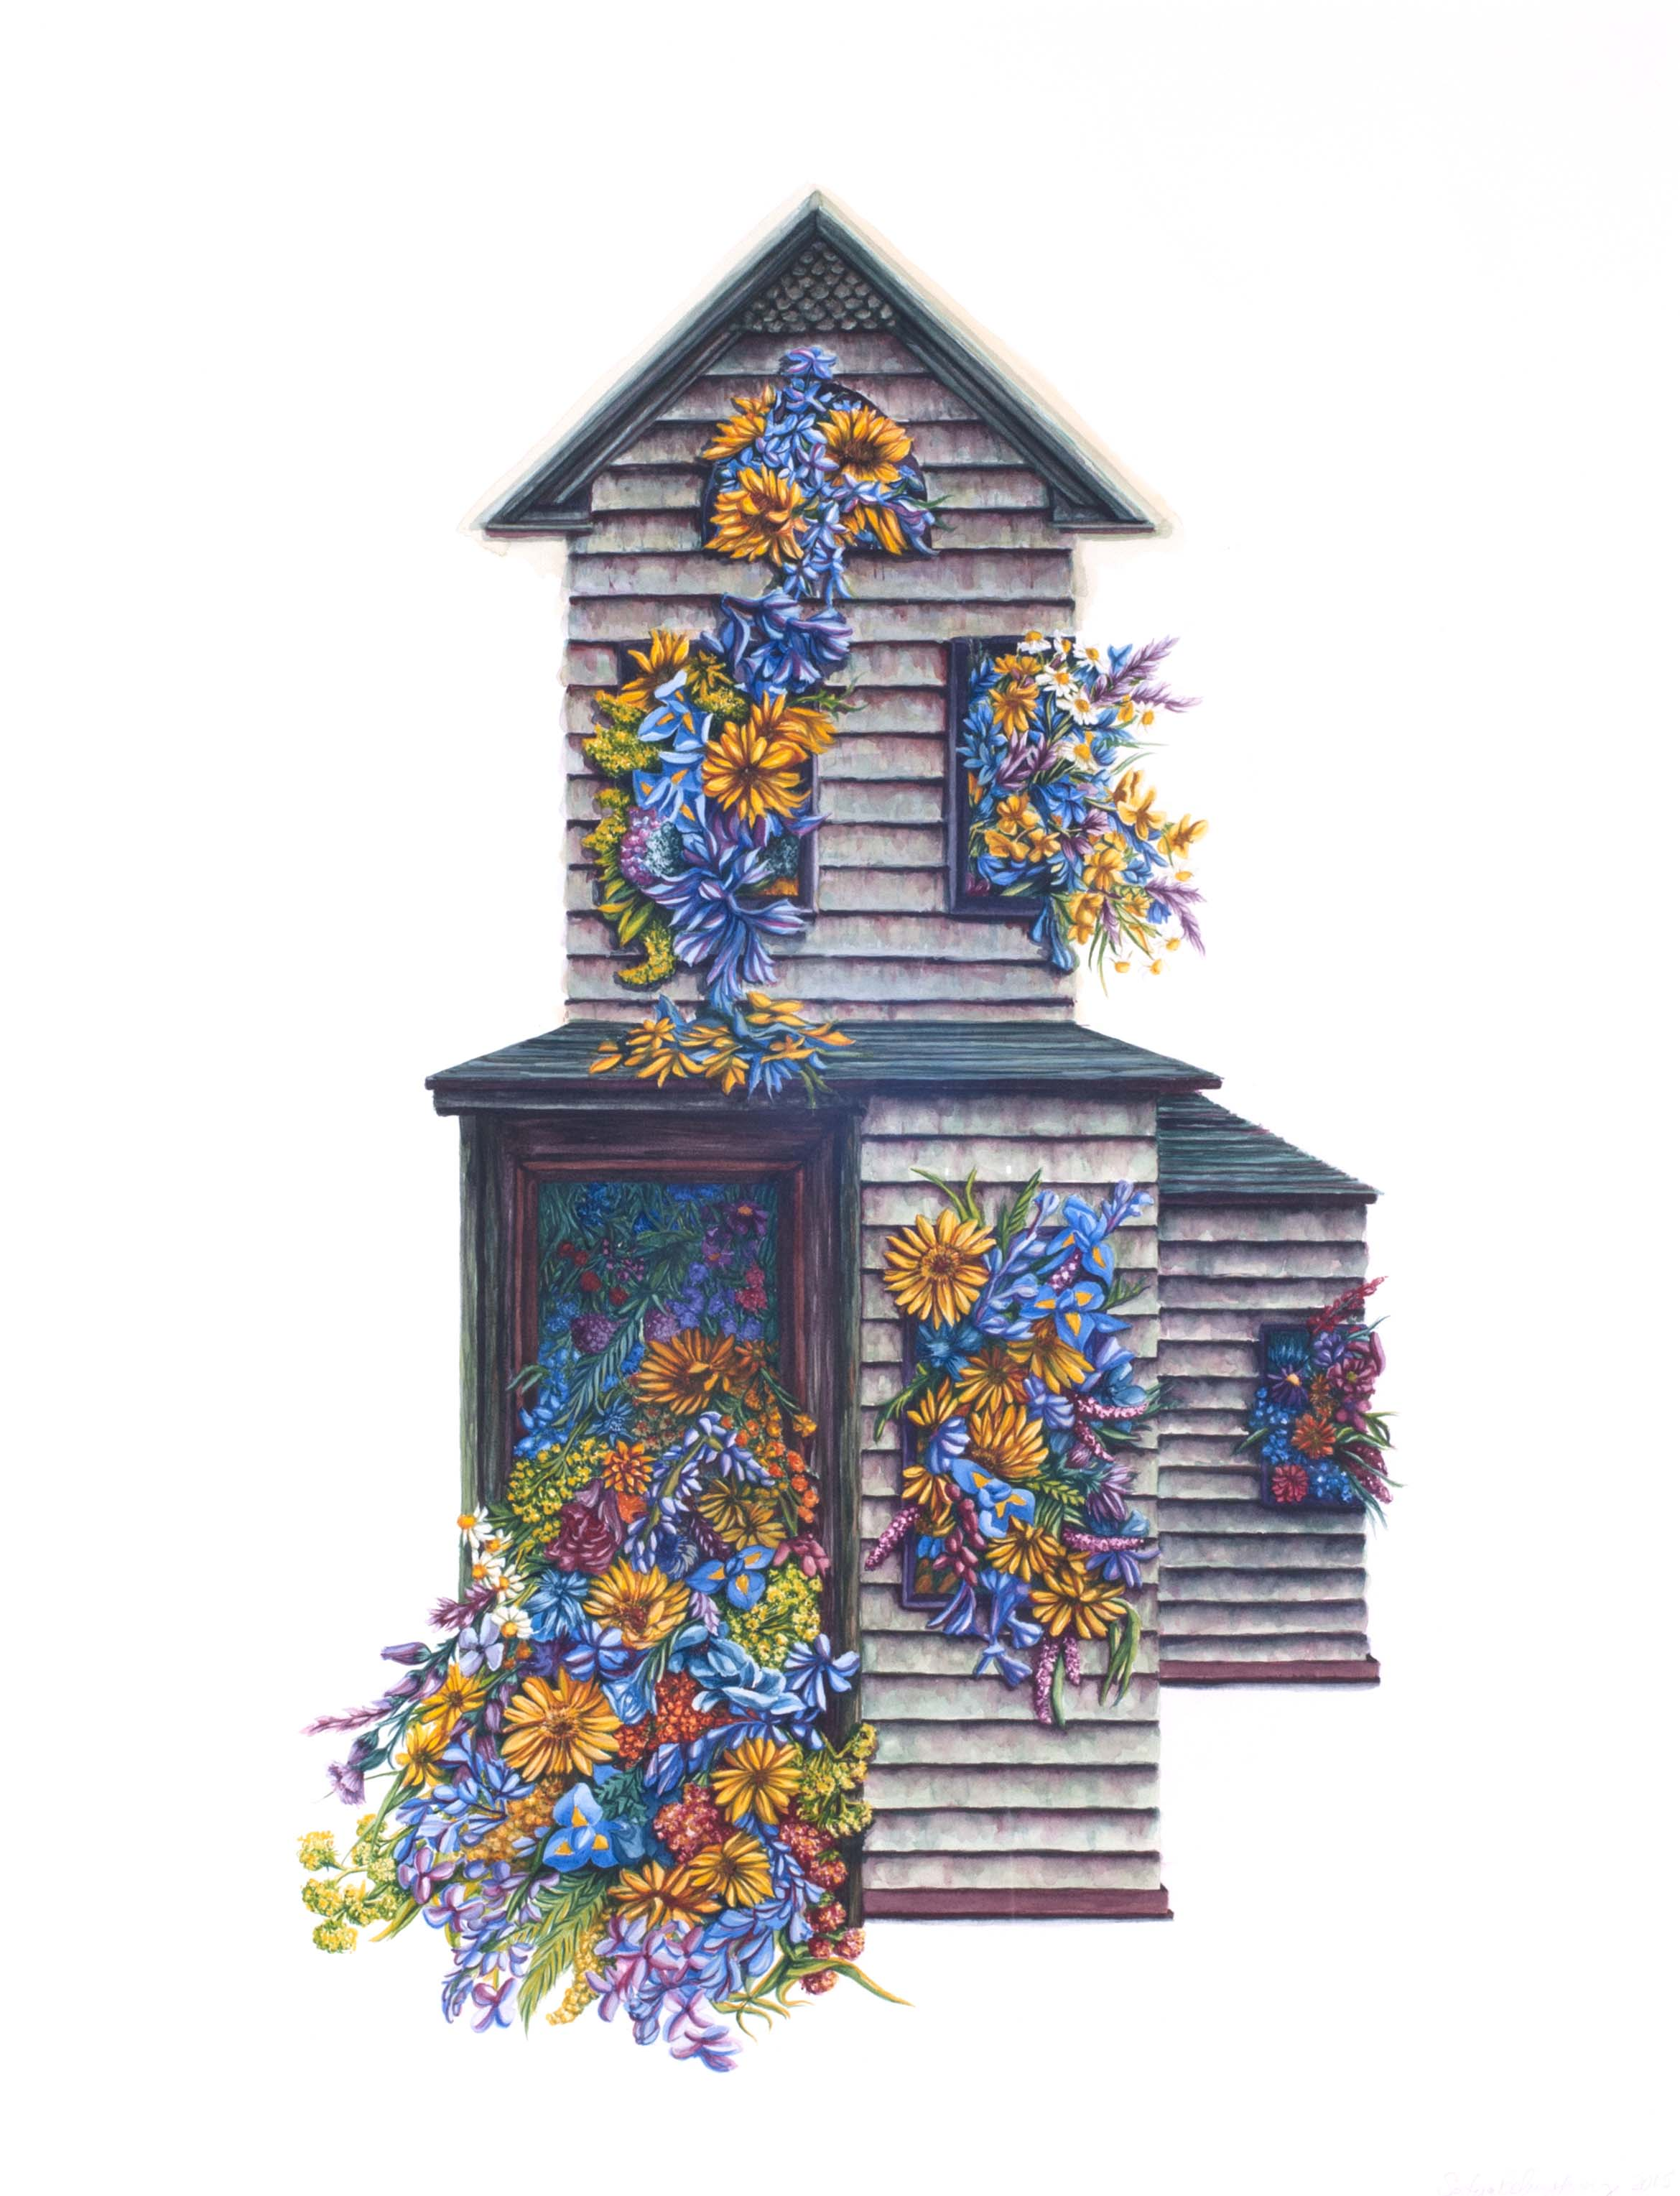 House of Flowers II